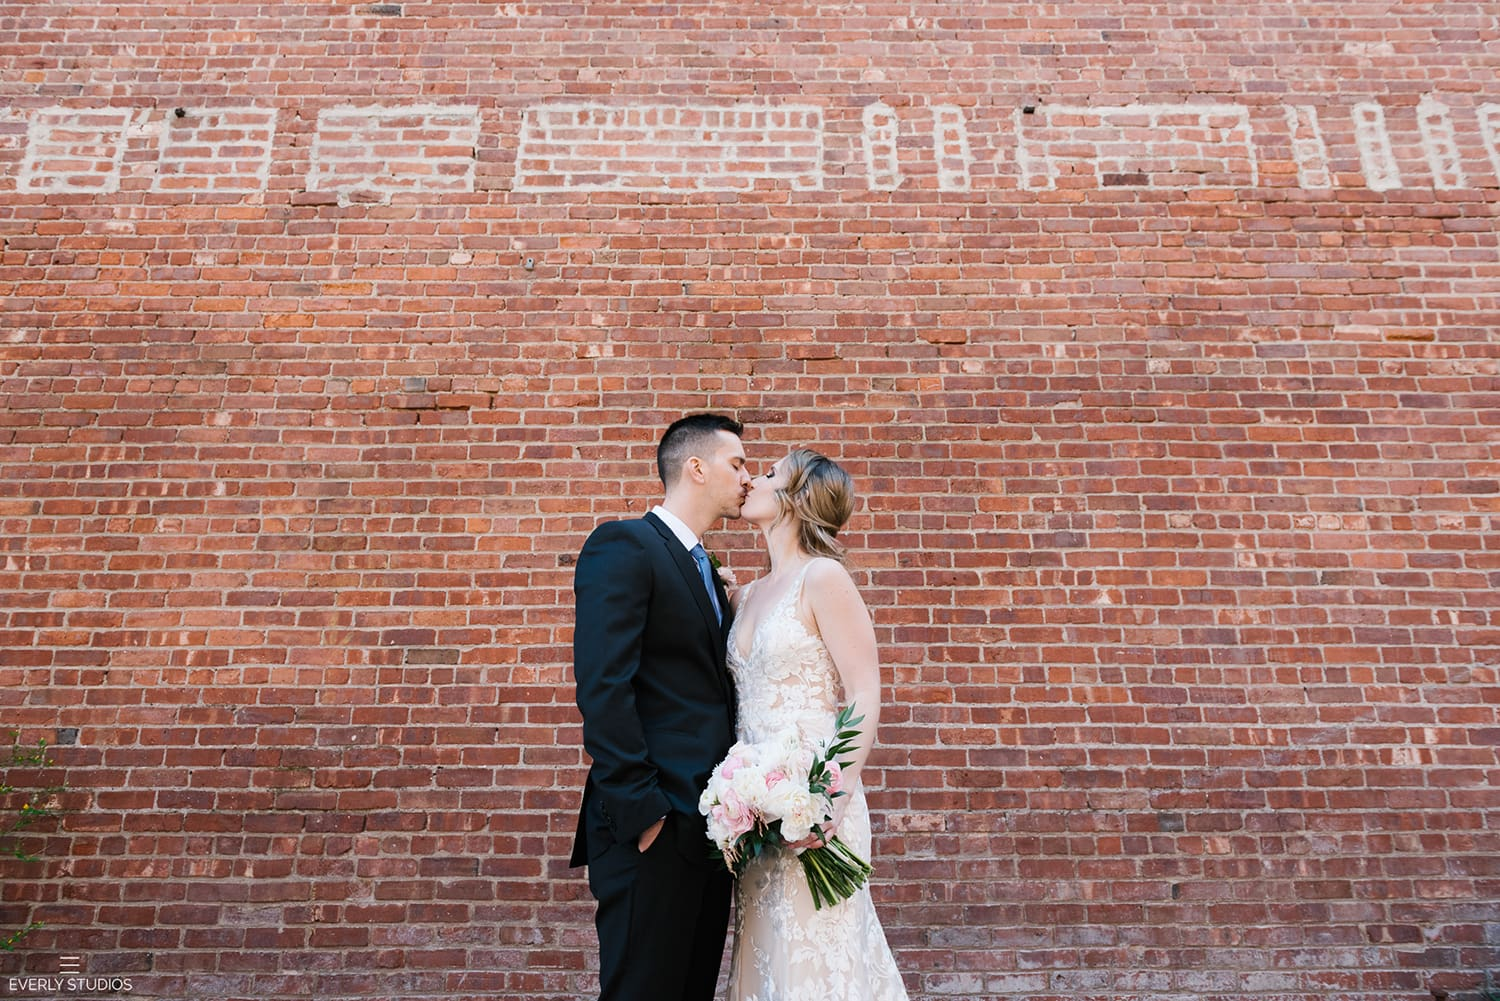 Brooklyn Bridge Park wedding photos in DUMBO, Brooklyn. Photos by New York wedding photographer Everly Studios, www.everlystudios.com